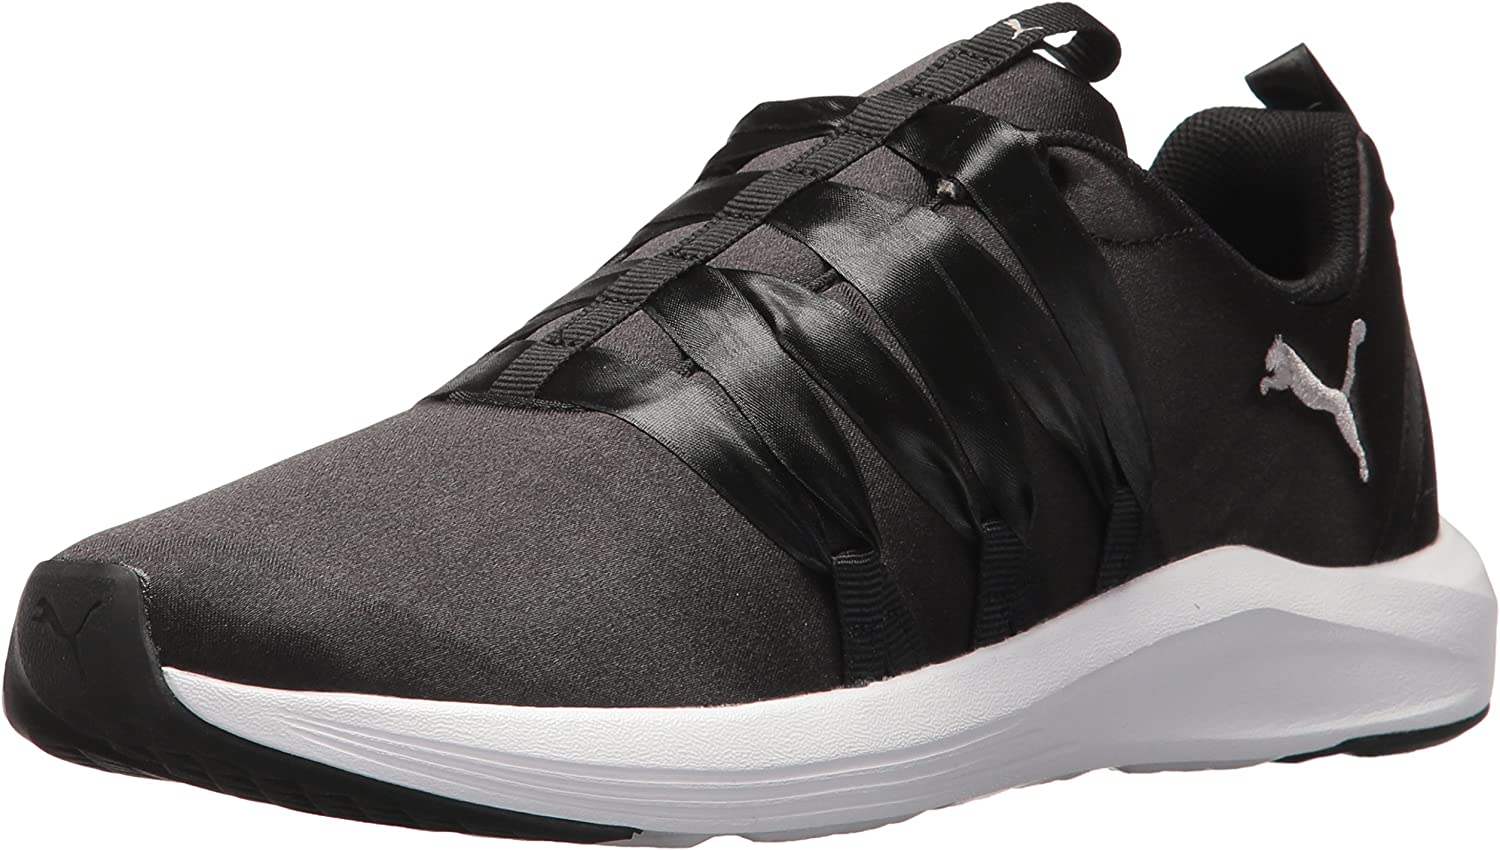 PUMA Women's Prowl Alt Satin Wn